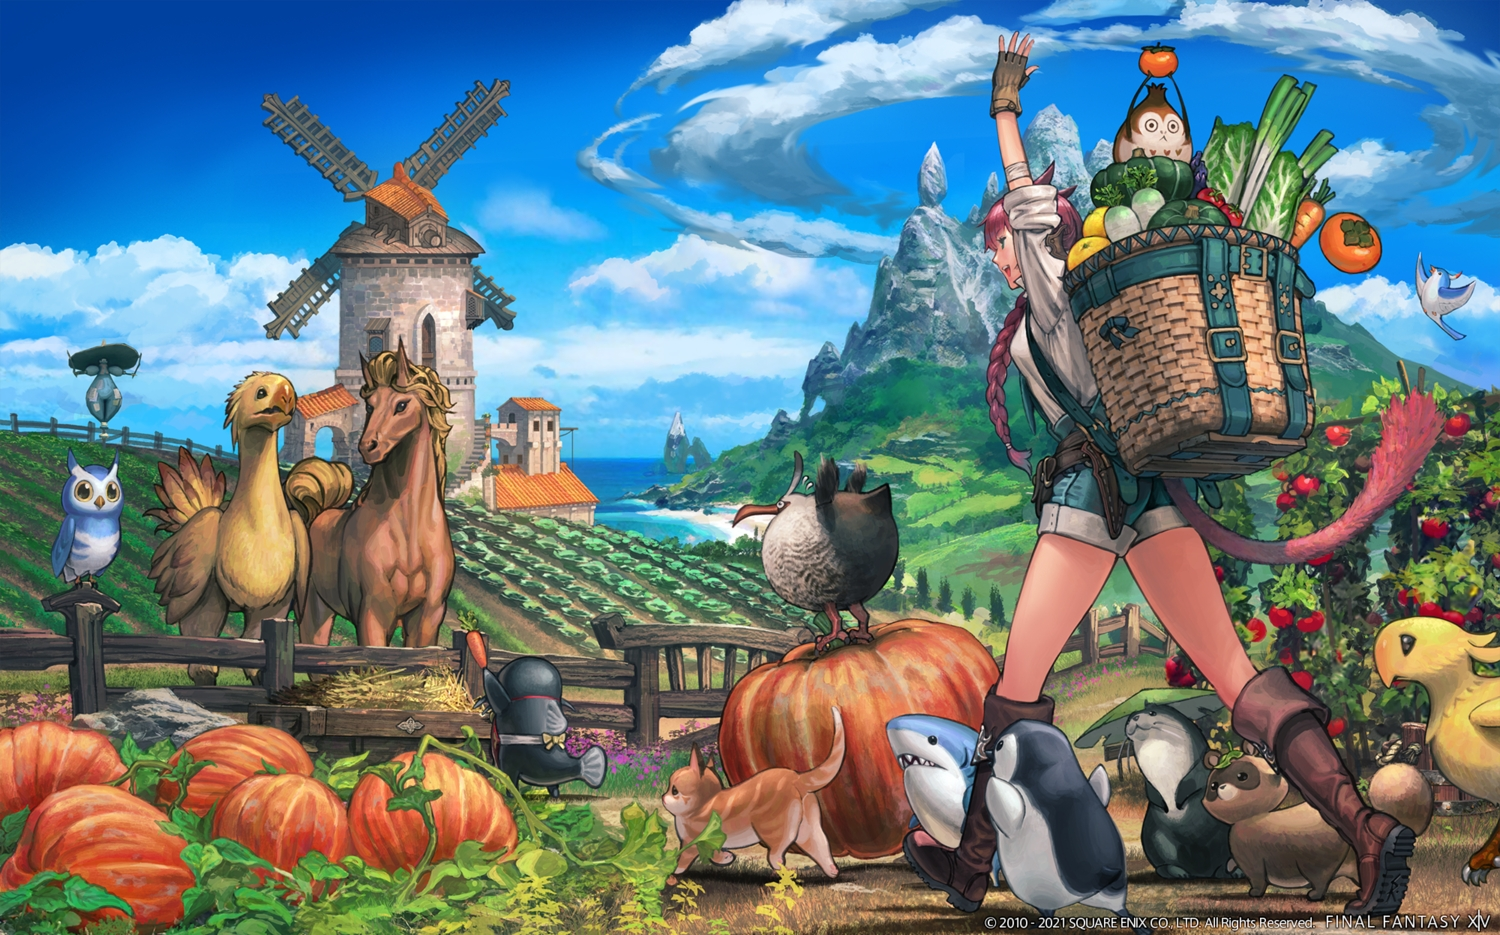 animal animal_ears bird braids cat catgirl chocobo final_fantasy final_fantasy_xiv gloves green_eyes horse miqo'te owl pumpkin red_hair shirt shorts square_enix tail watermark windmill